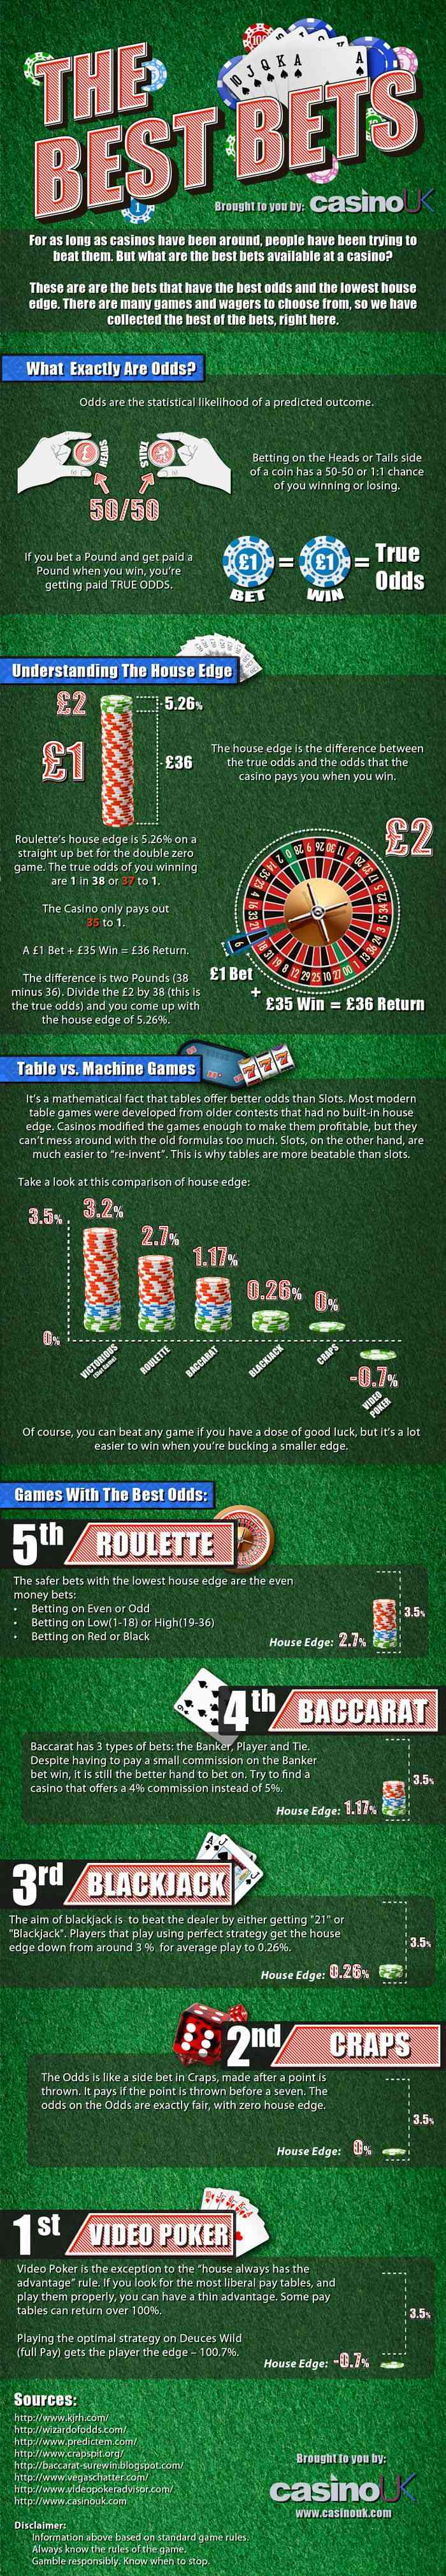 Best-Bets-Odds-Casino-Games-infographic